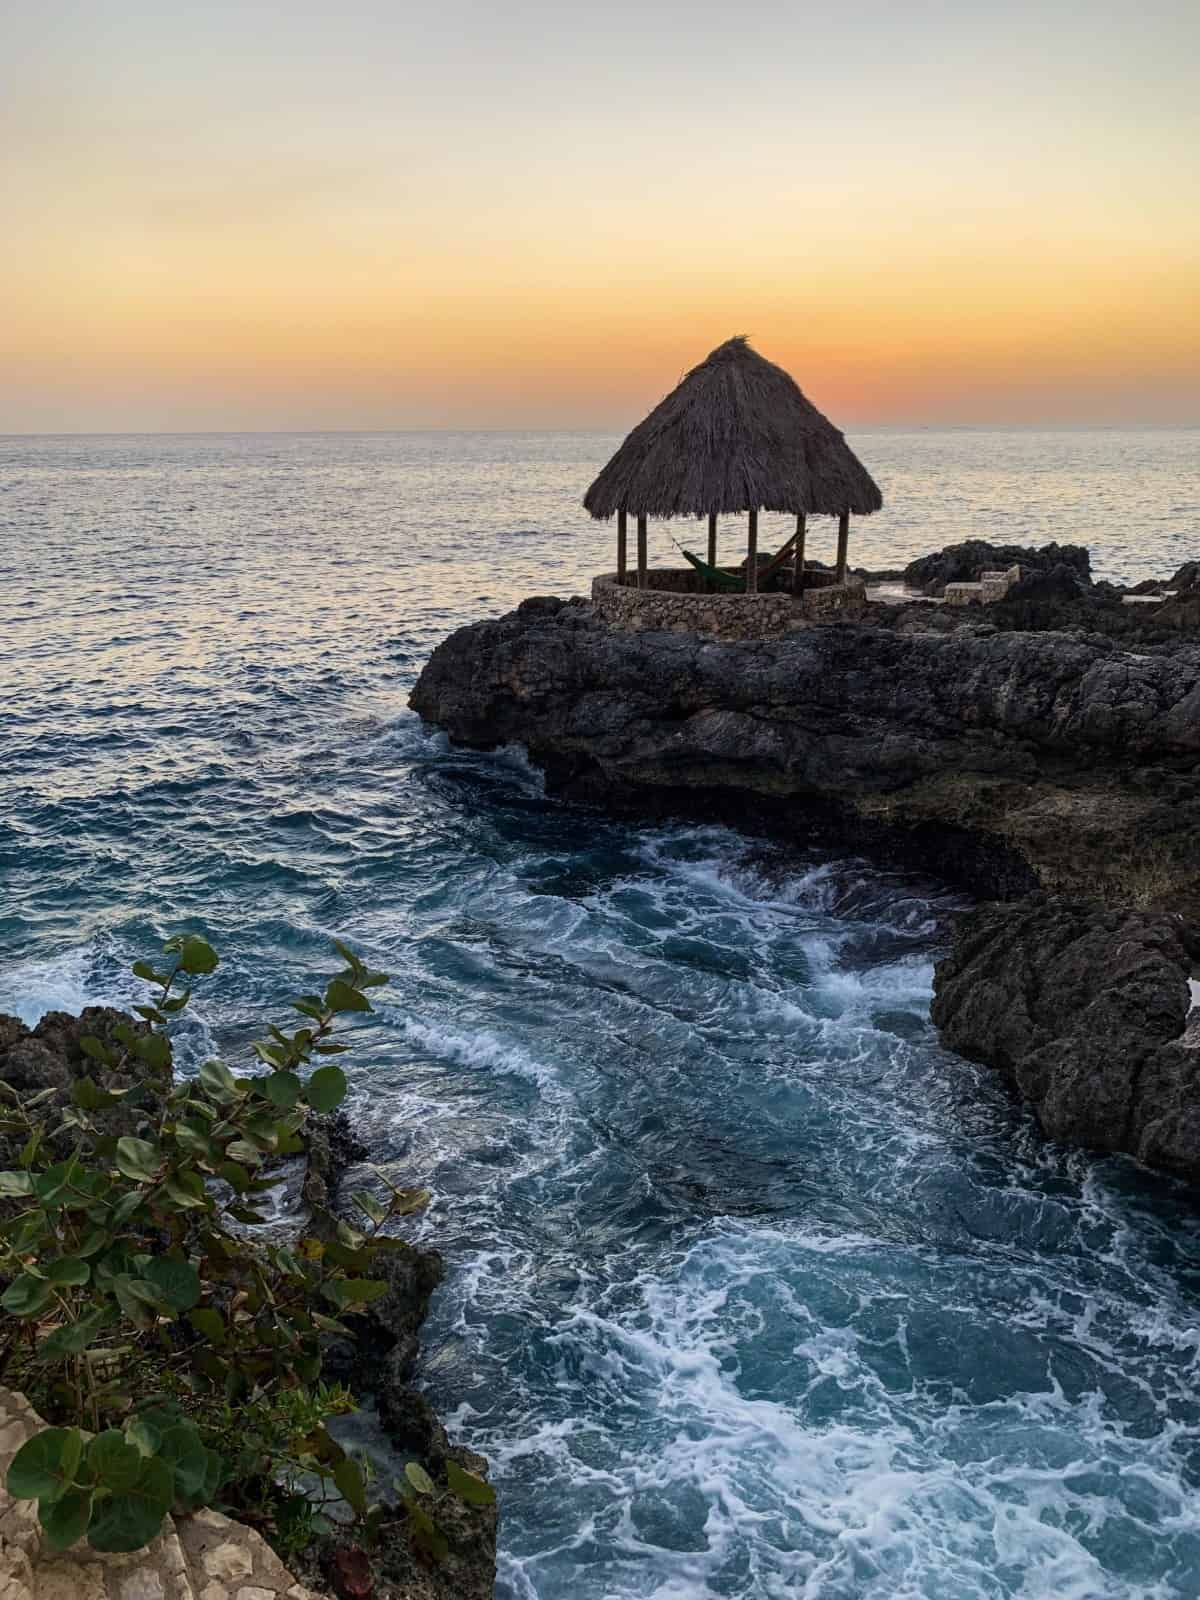 The sunsets in Negril, Jamaica